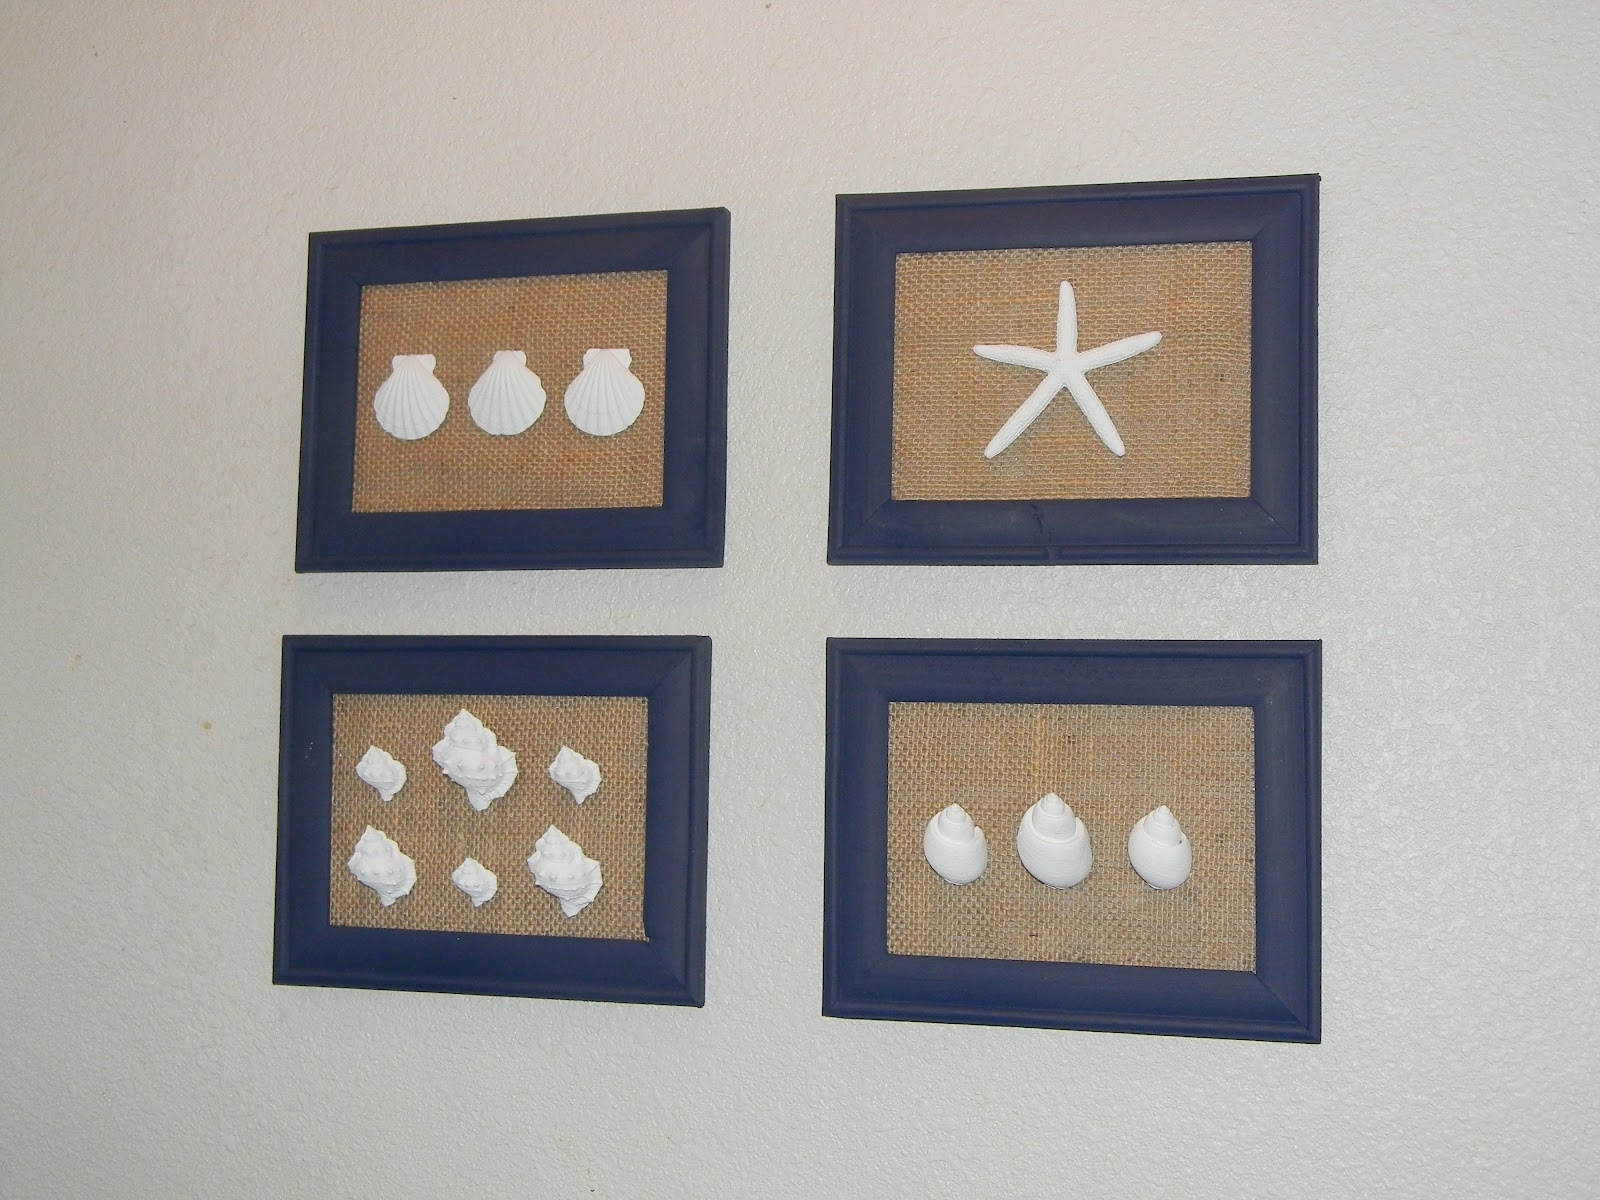 Current Brandy's Creations: Diy Sea Shell And Burlap Wall Art For Wall Art With Seashells (View 3 of 15)